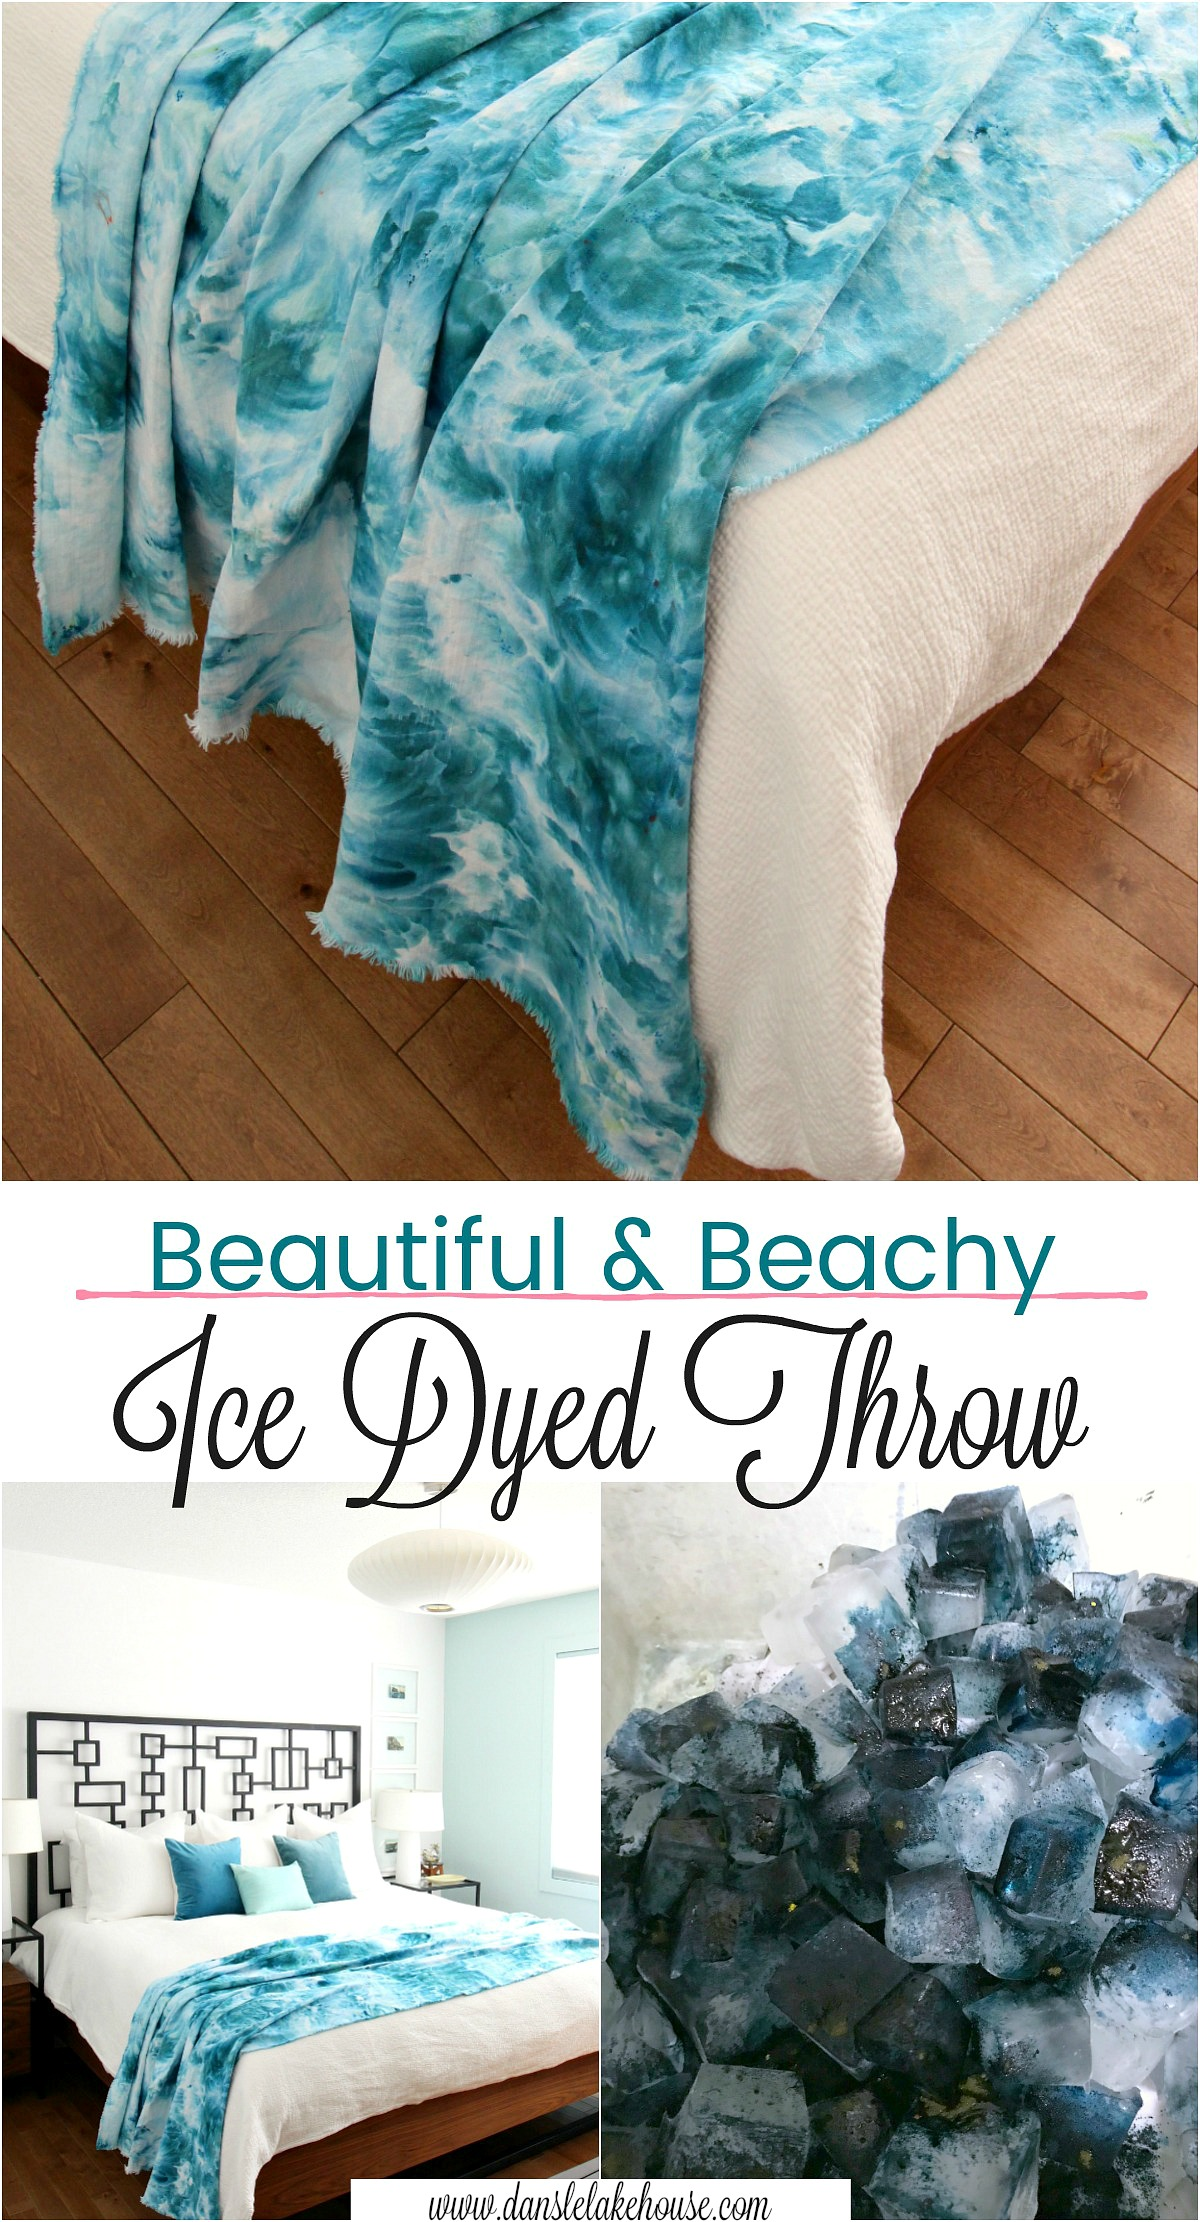 DIY Ice Dye Throw Blanket | How to Ice Dye